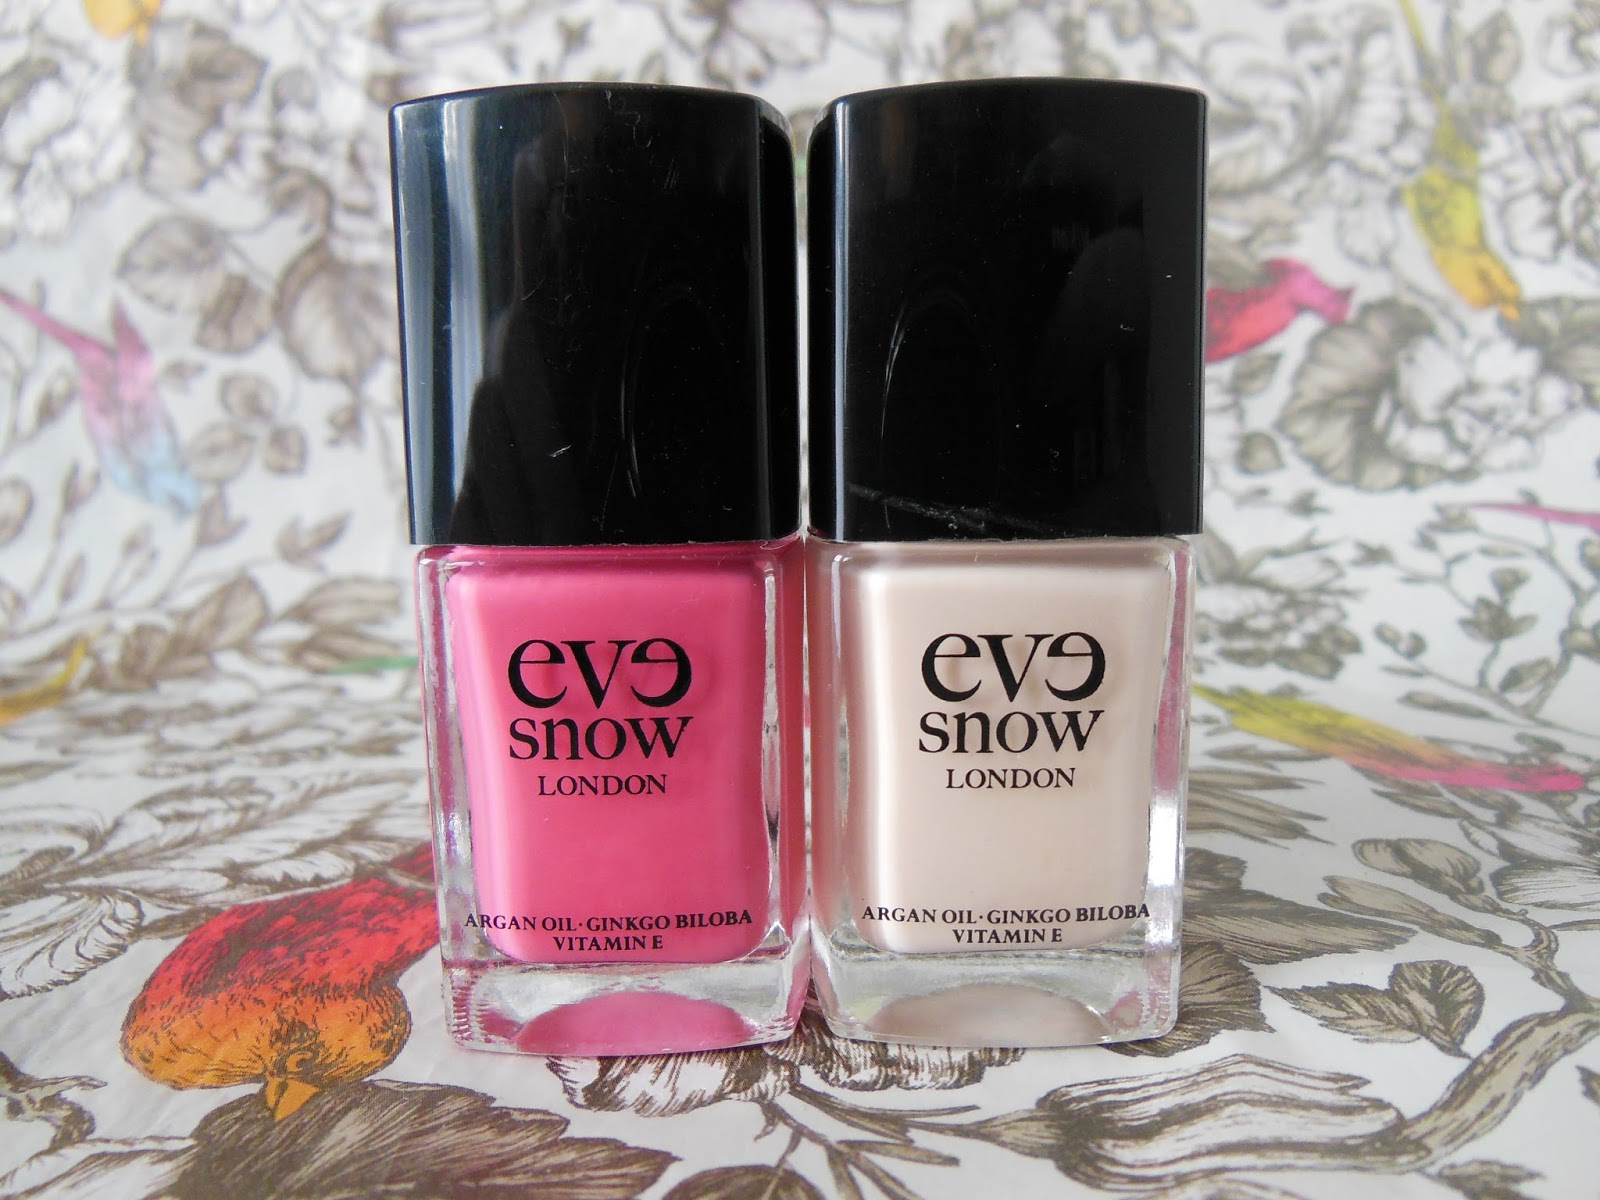 Eve Snow nail polishes